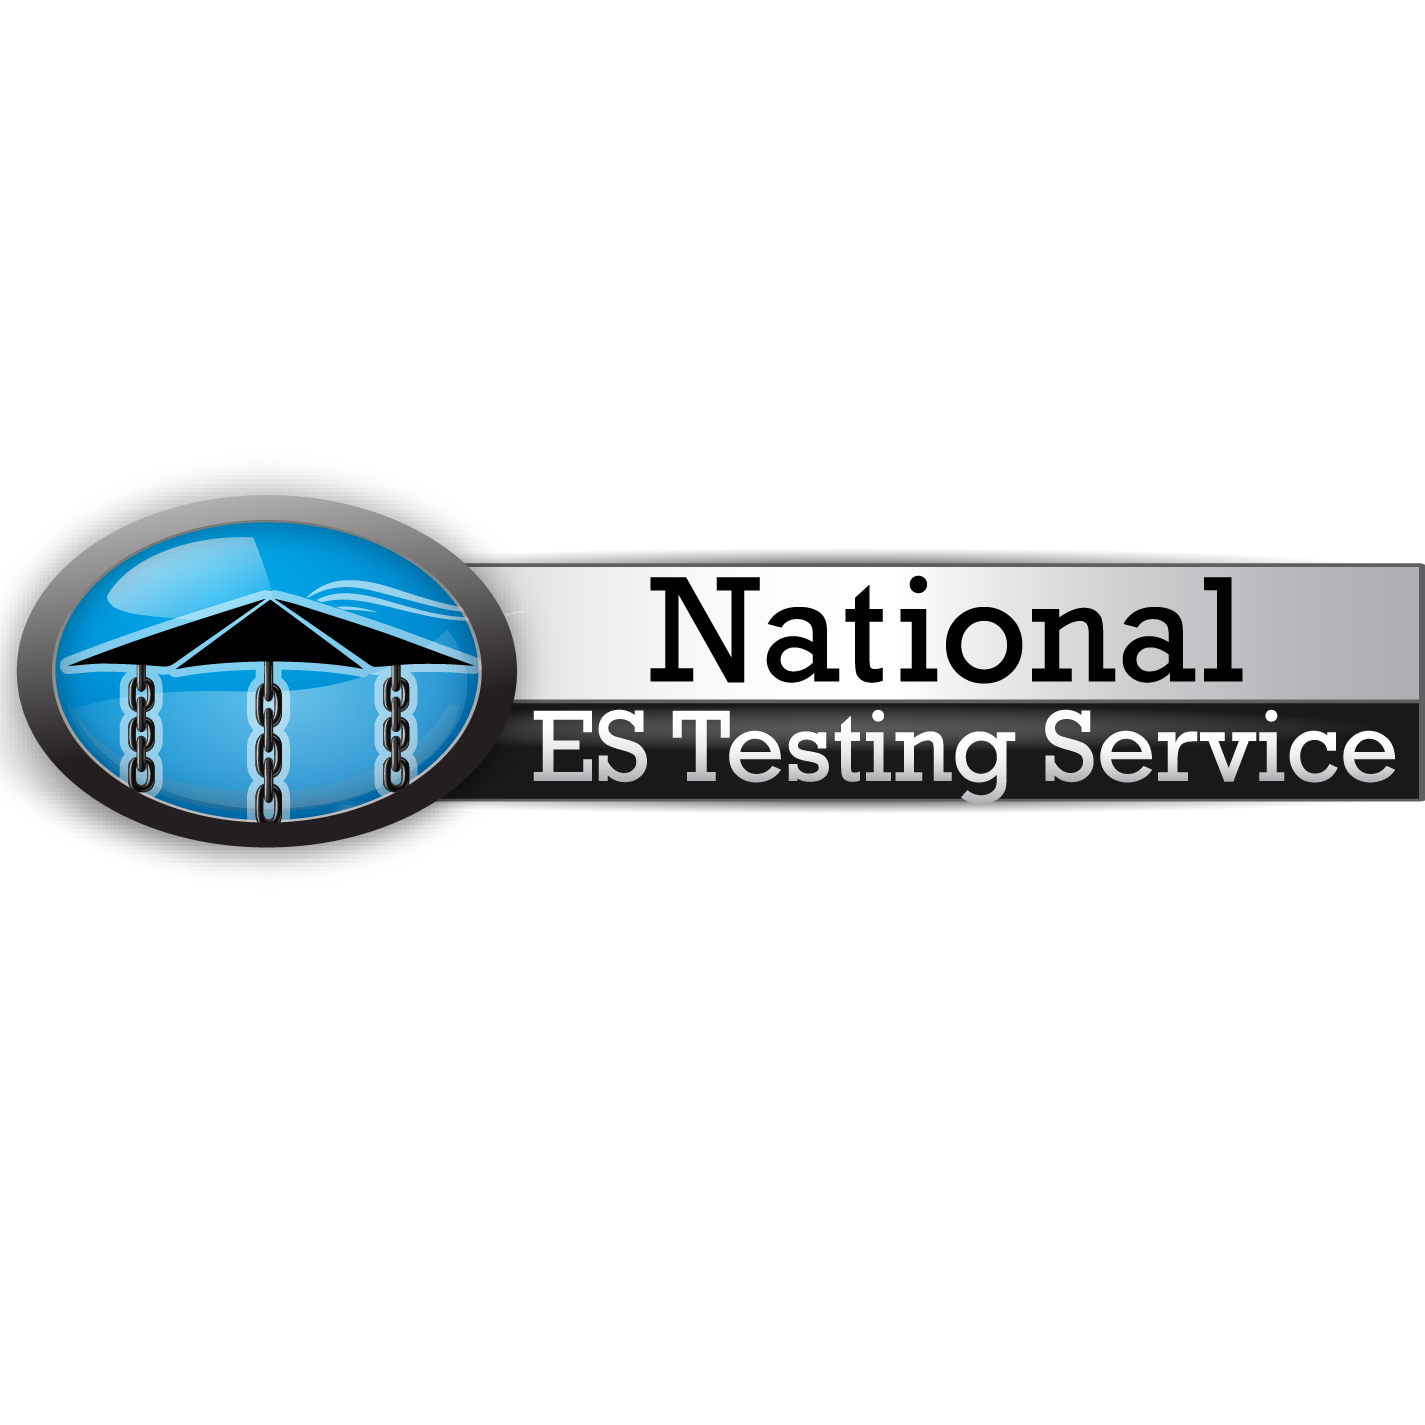 National ES Testing Service, Incorporated